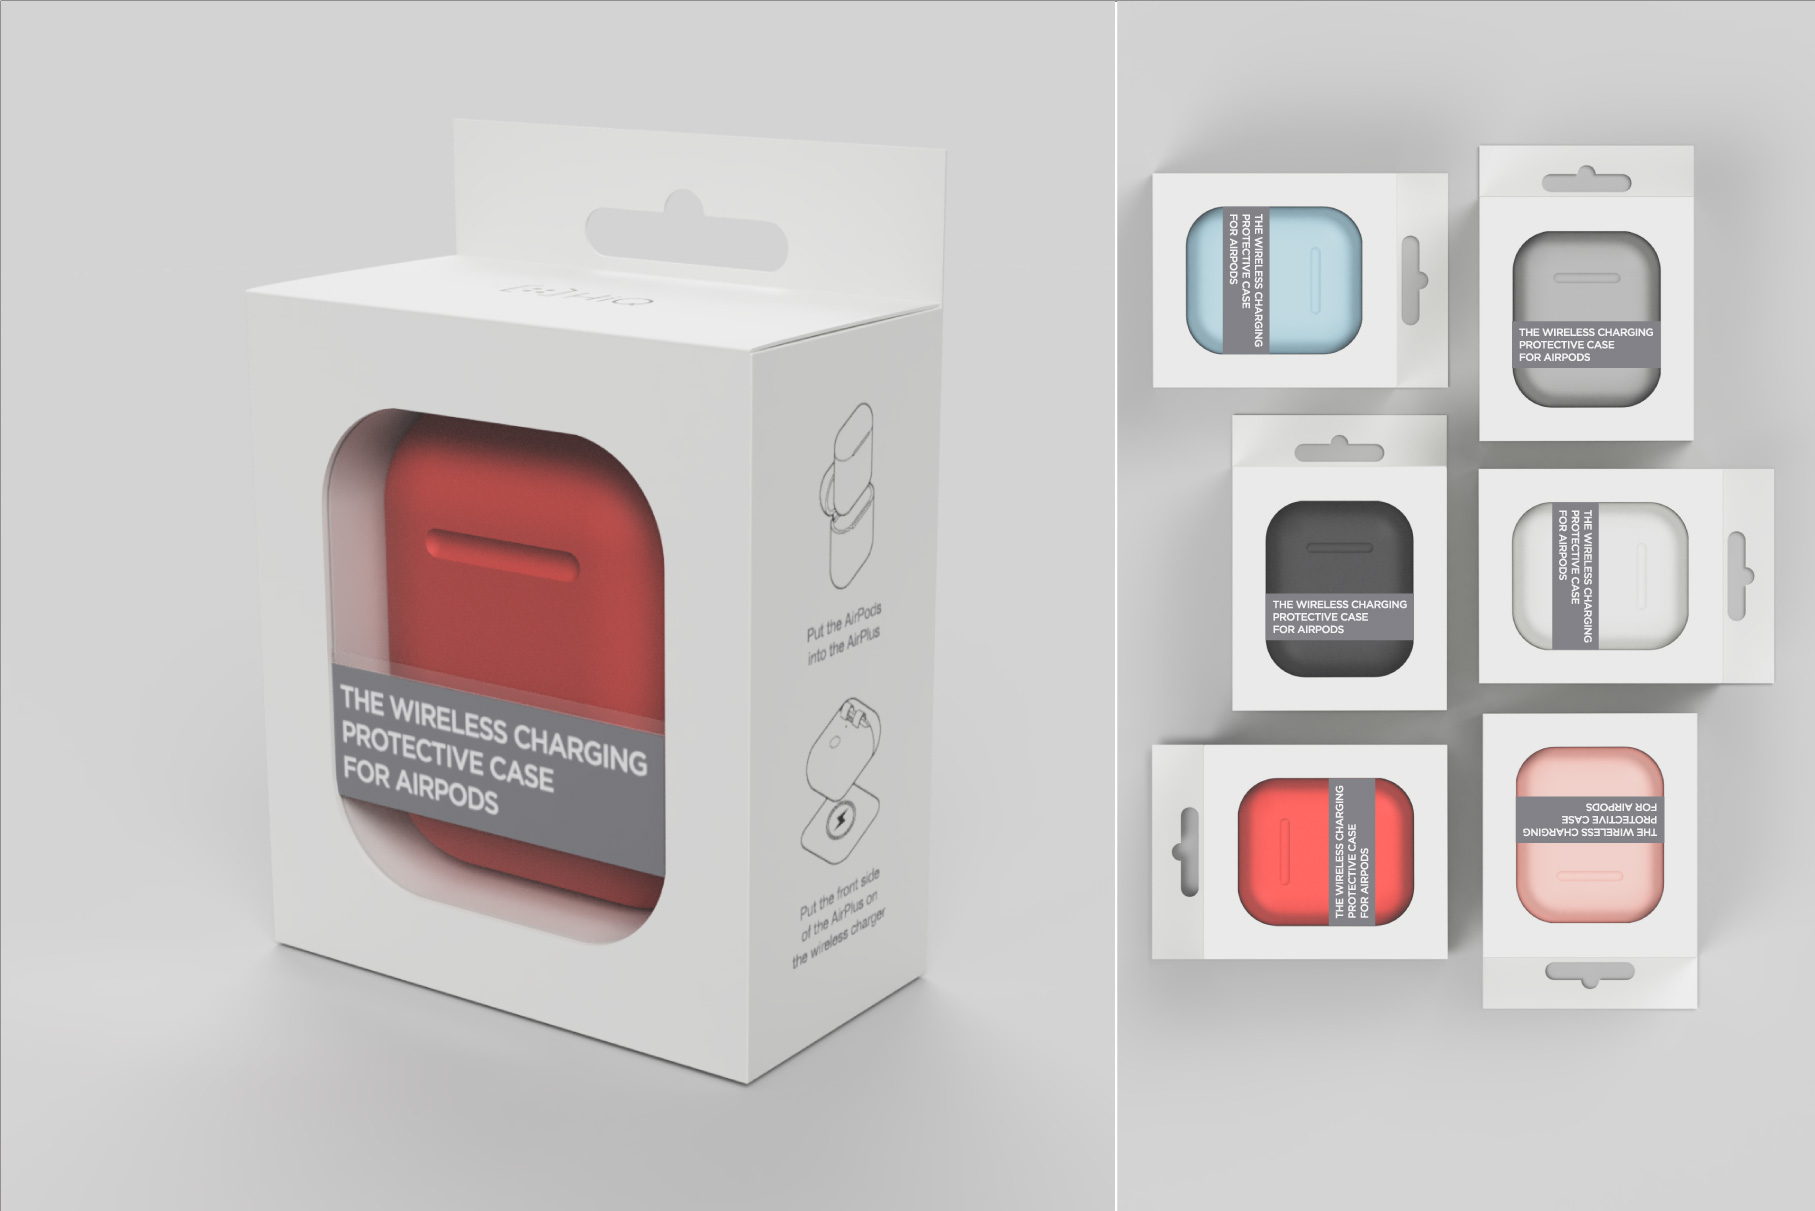 8122744fad9 ... to your AirPods case. It's available in six color options to match  available iPhone models including white, black, red, grey, rose gold, and  sky blue.